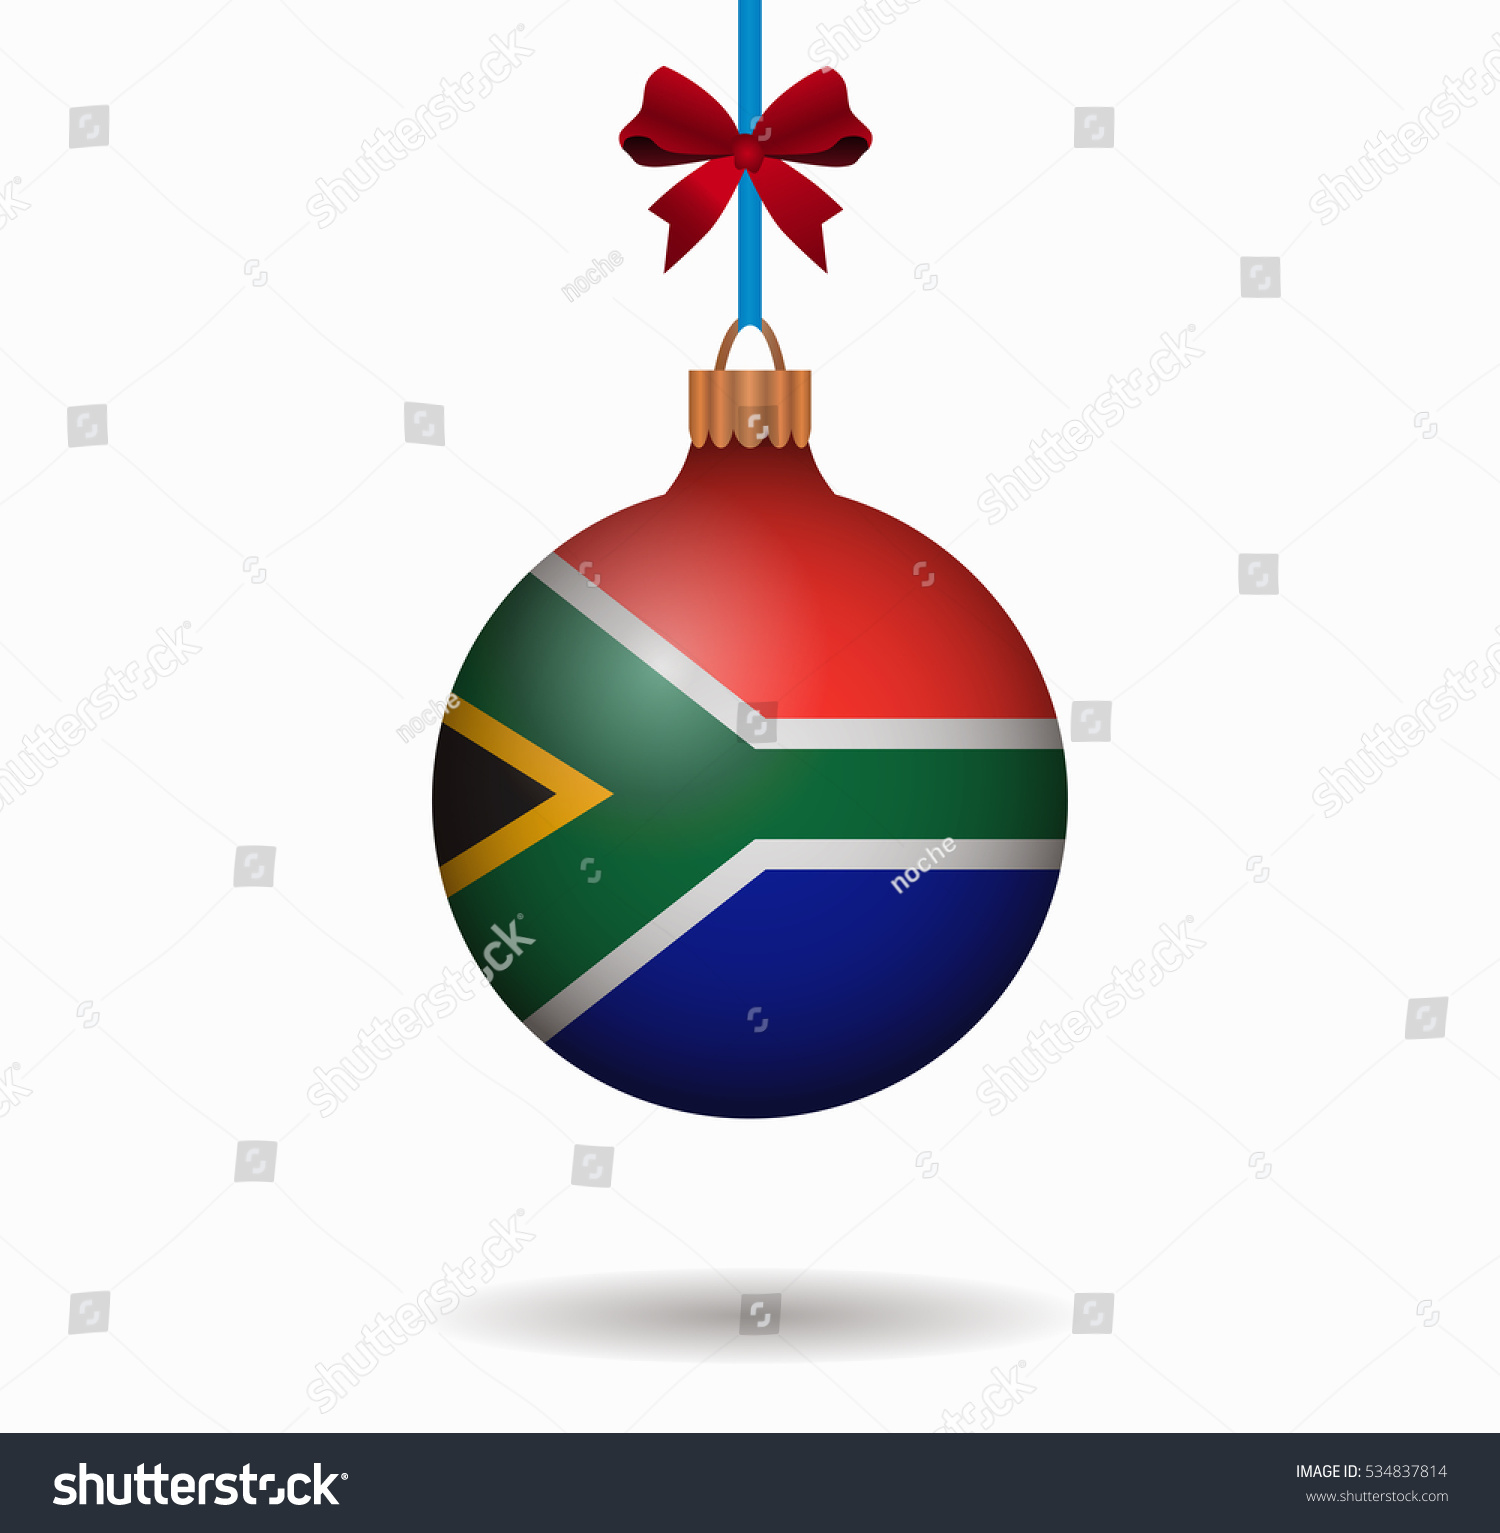 Christmas In South Africa Images.Isolated Christmas Ball South Africa Stock Vector Royalty